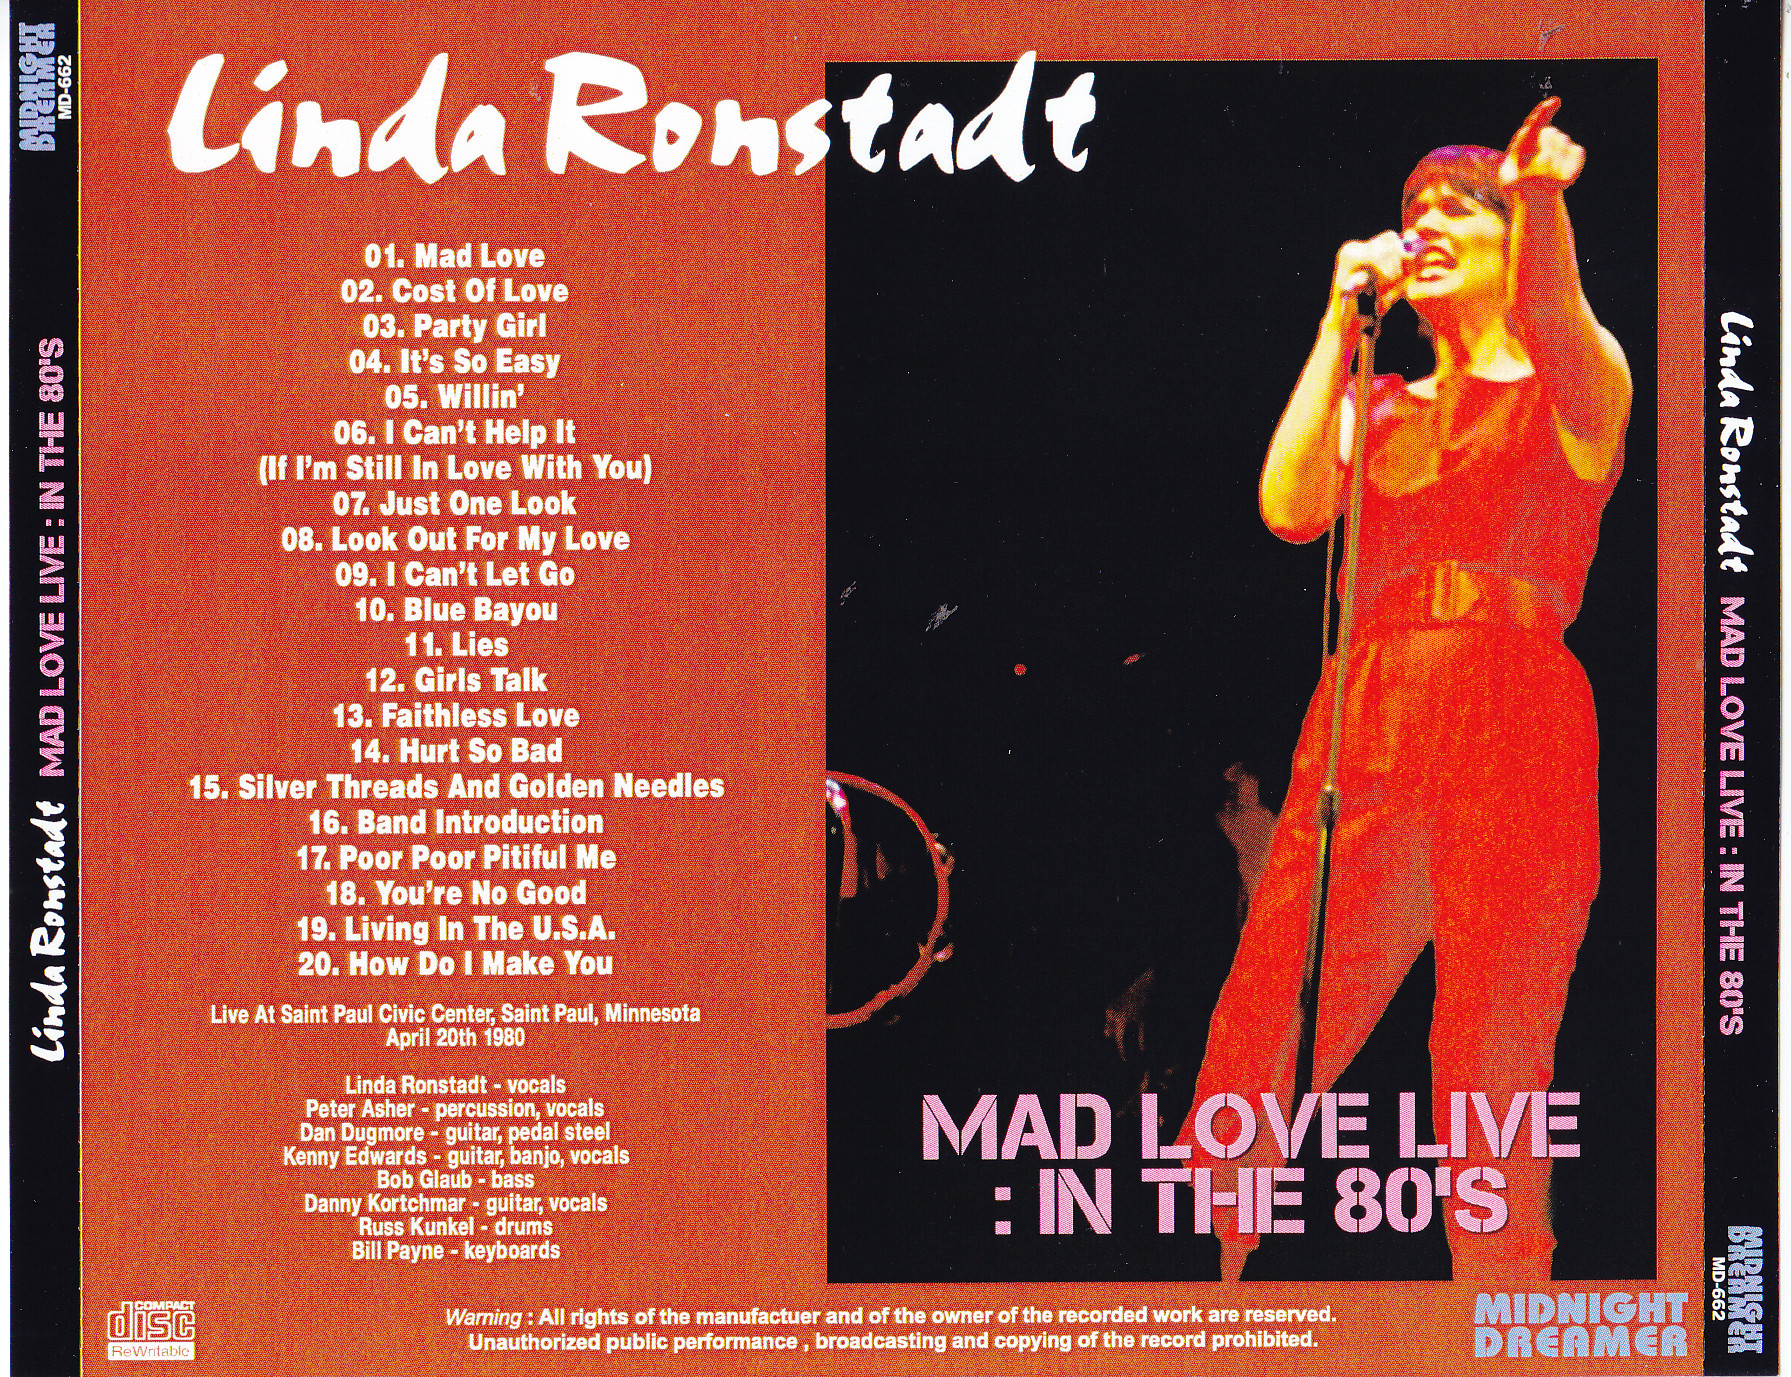 Linda Ronstadt Mad Love Live In The 80s 1cdr Giginjapan